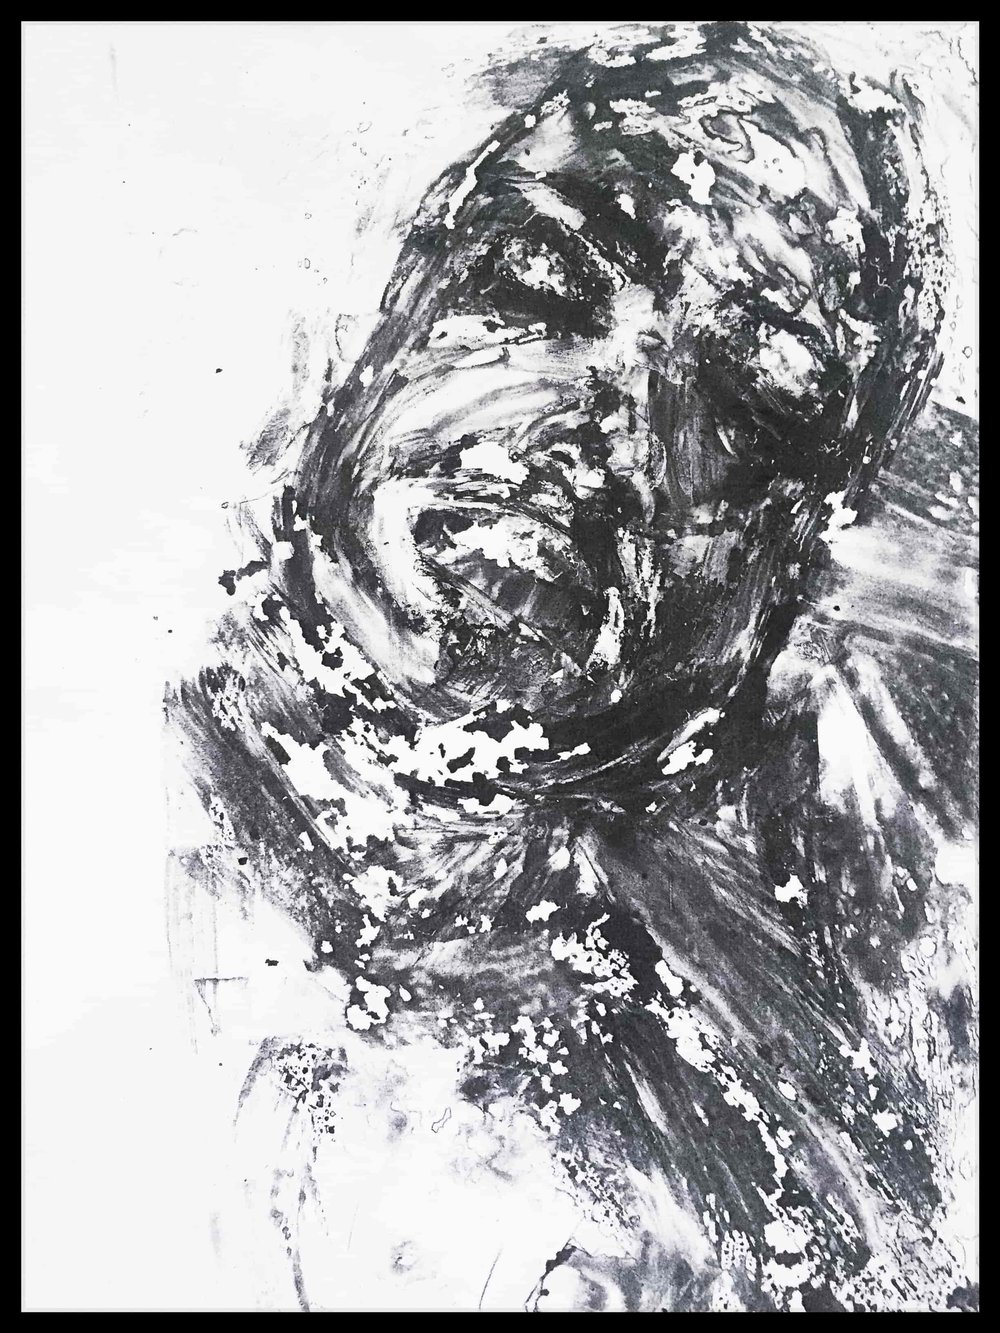 """Dissolved No. 5 ,2015   Monotype print on copy paper  9""""x11"""" (Framed) 8.5""""x11""""(Image)  Collection of the artist"""